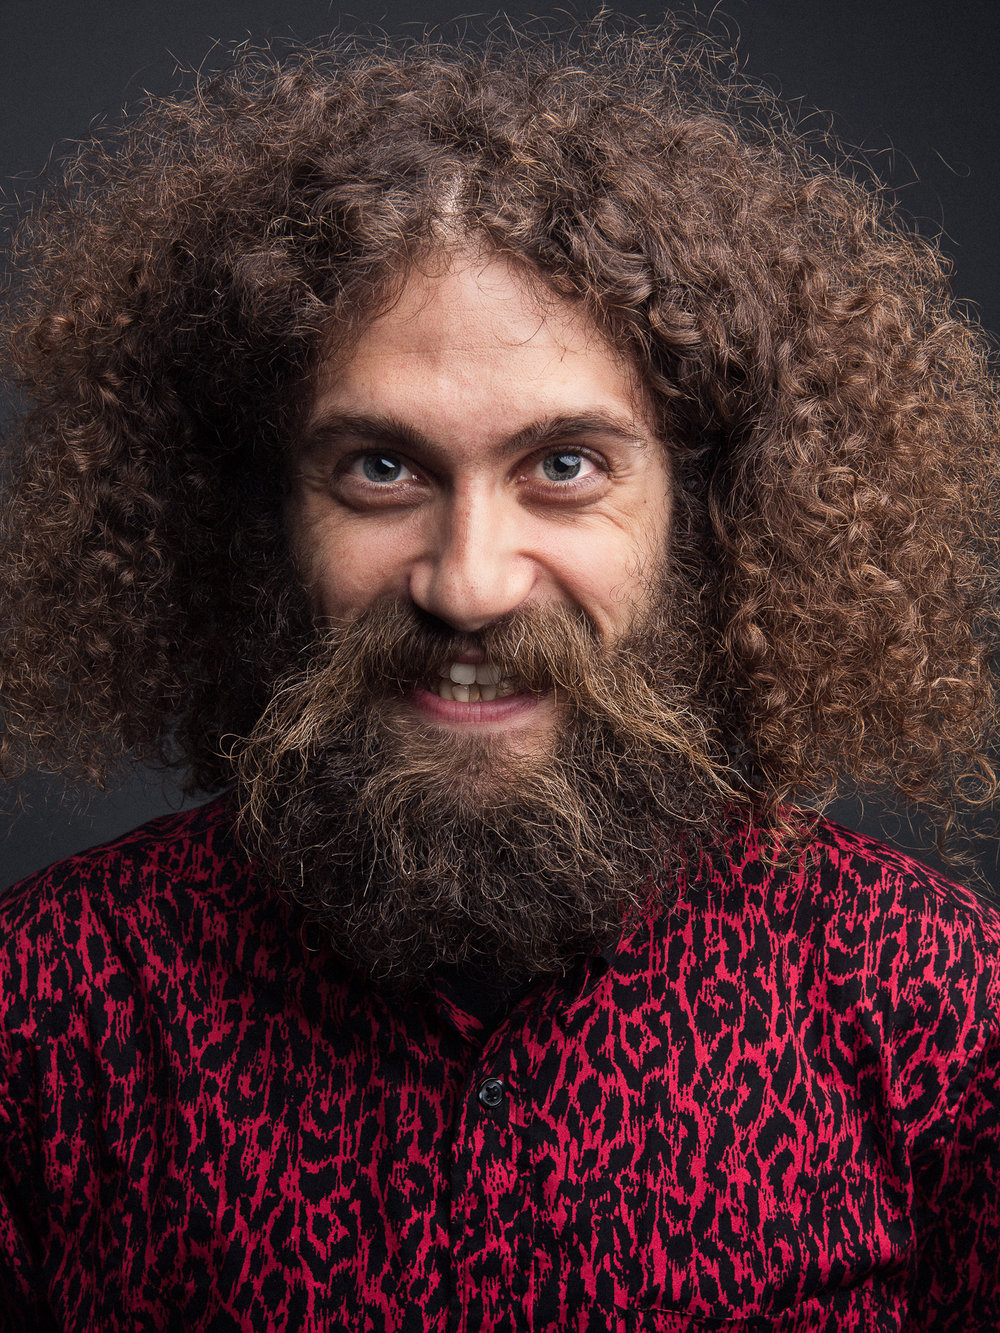 Gaslamp Killer_64A1639 by Janosch Abel_web.jpg